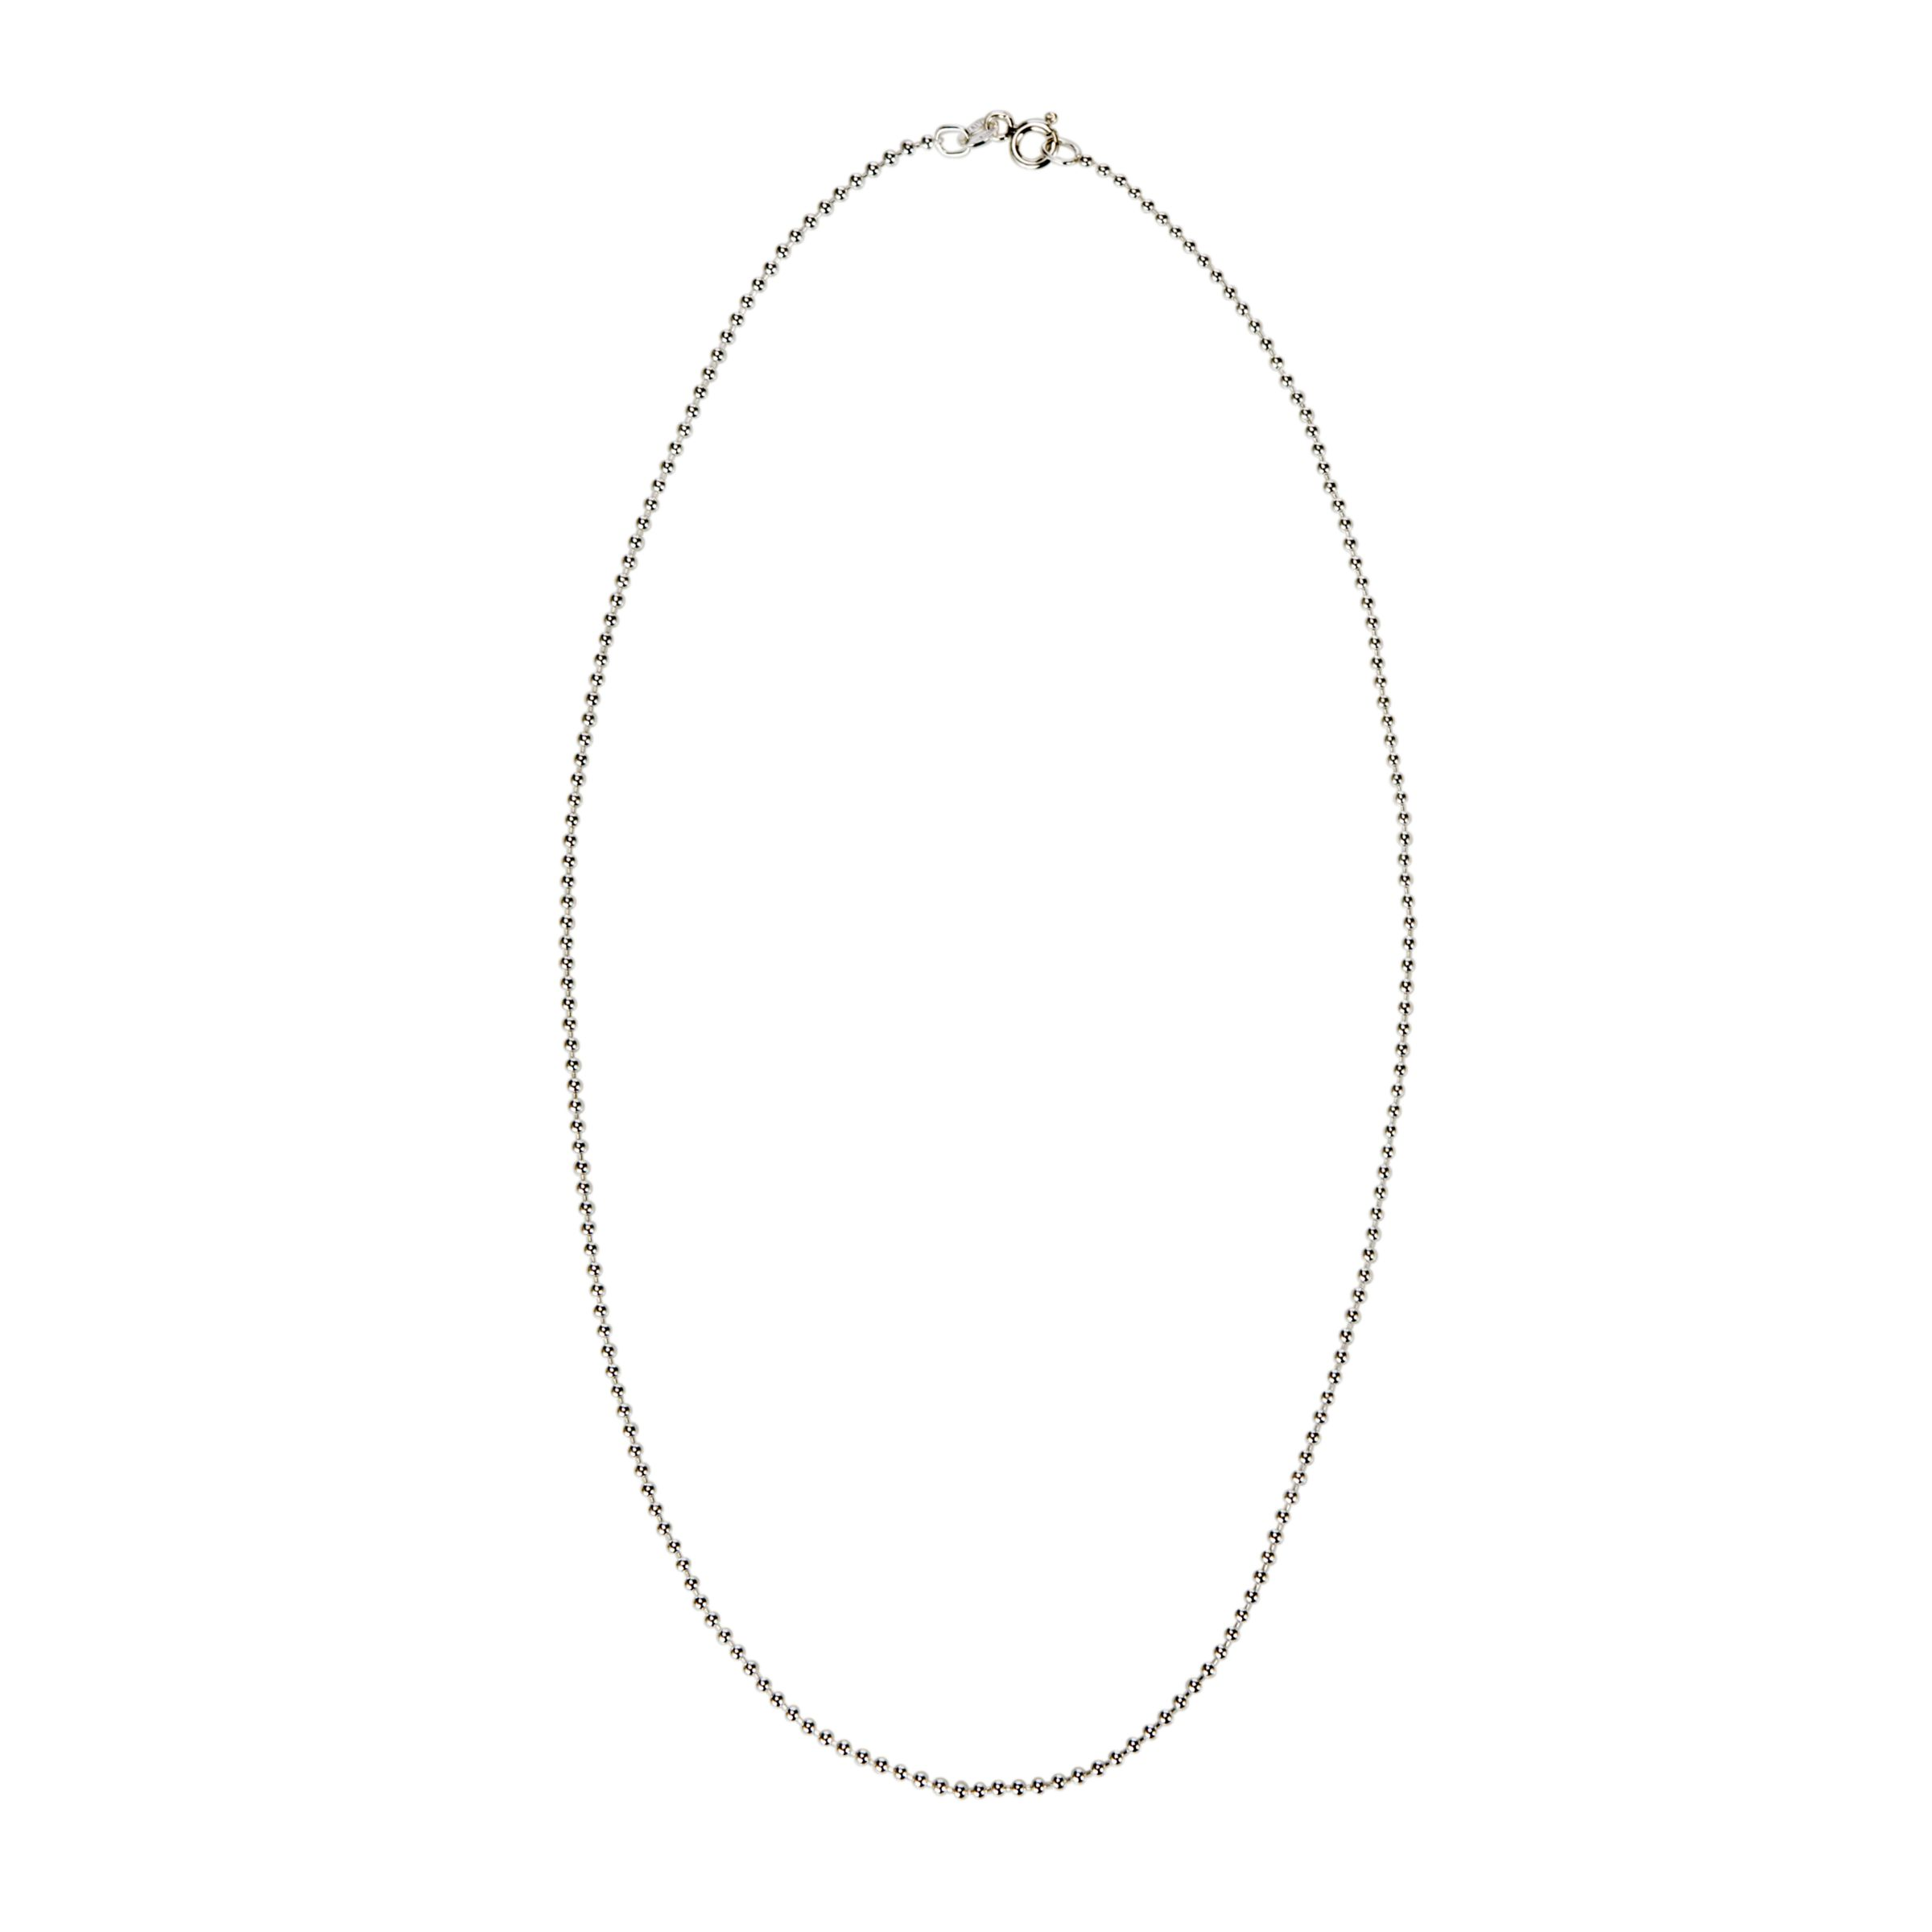 Nina Breddal Silver Ball Chain Necklace, 45cm